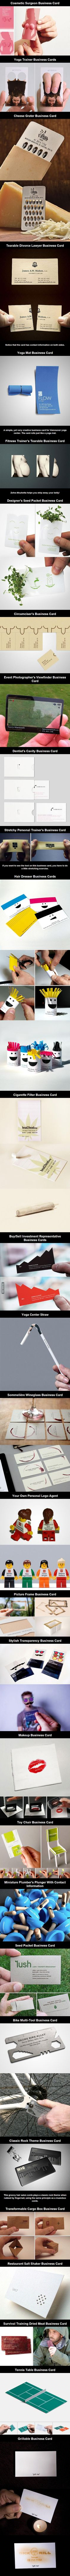 Most Creative Business Cards Ever. Marketing team - look at the transparent ones - goes with our theme